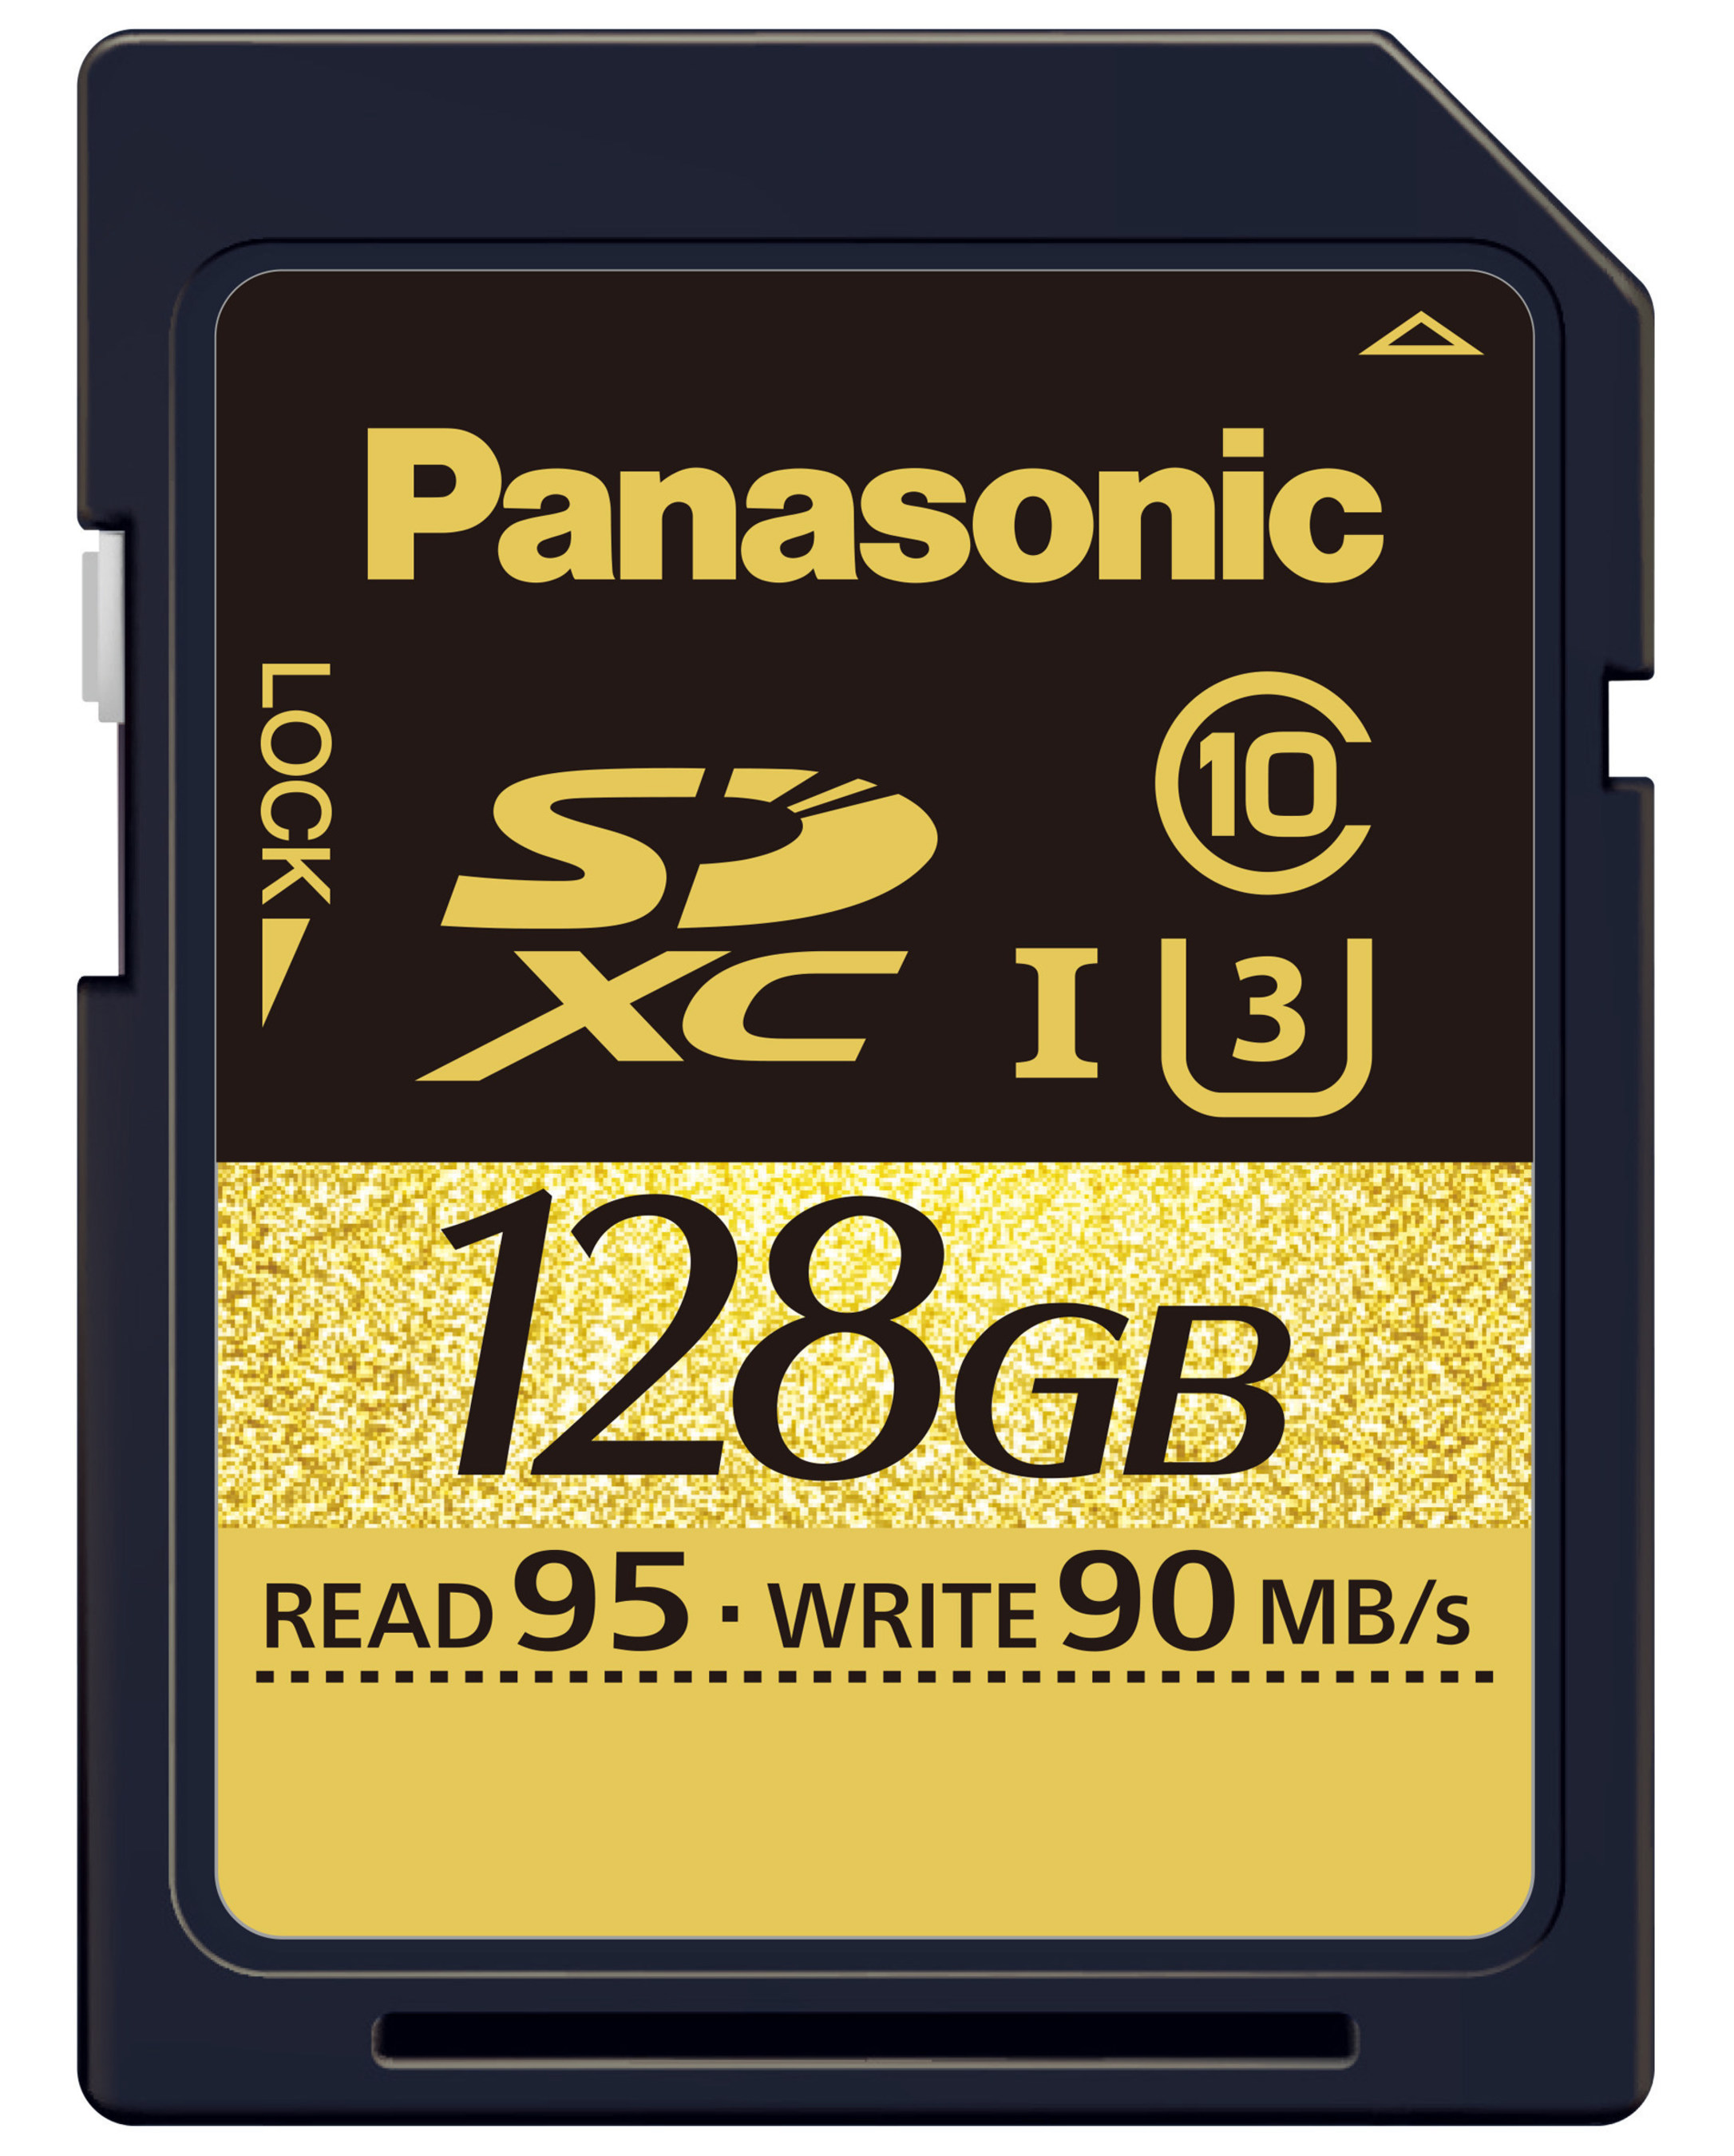 Panasonic Announces SDXC/SDHC UHS-I Memory Cards Compliant with UHS